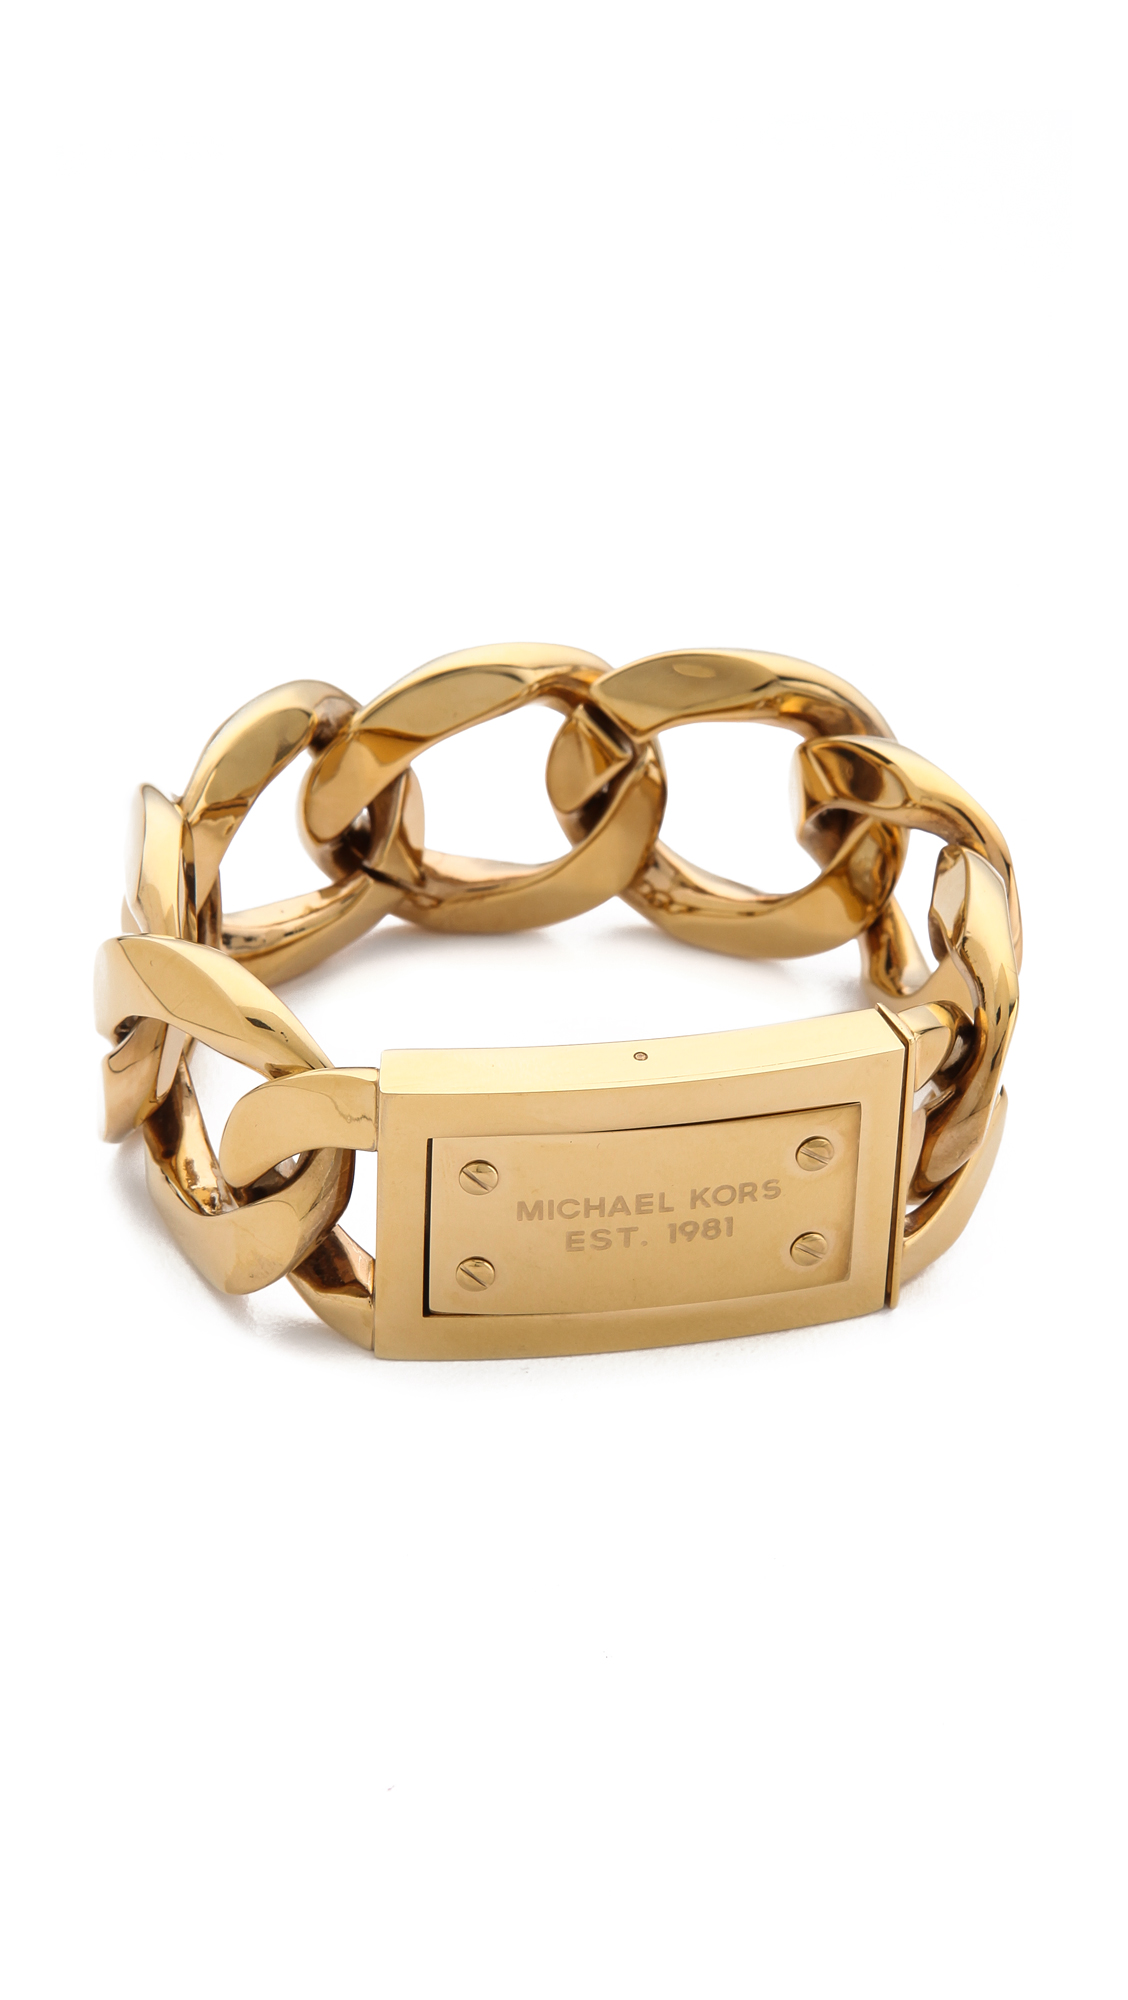 e dhgate com bracelet gold large model tri rolling bay color from product bangle